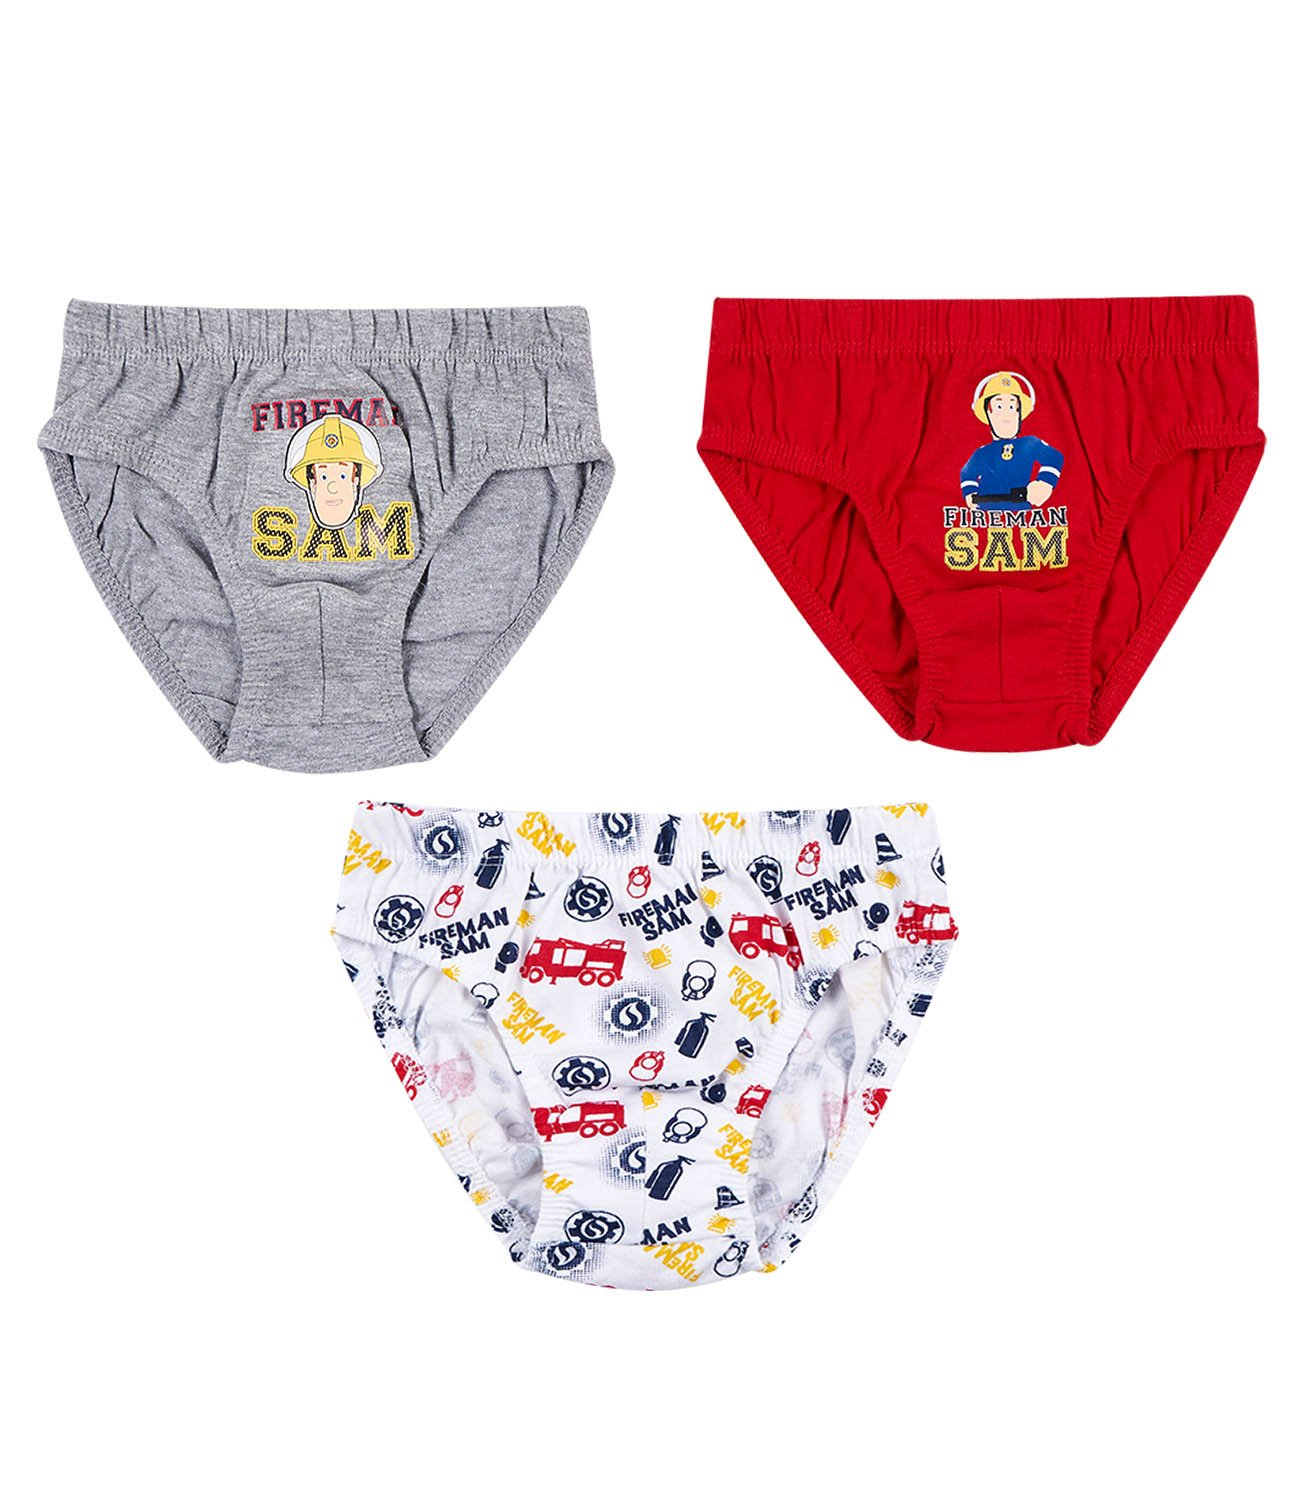 Fireman Sam Boys 3 pack brief - red